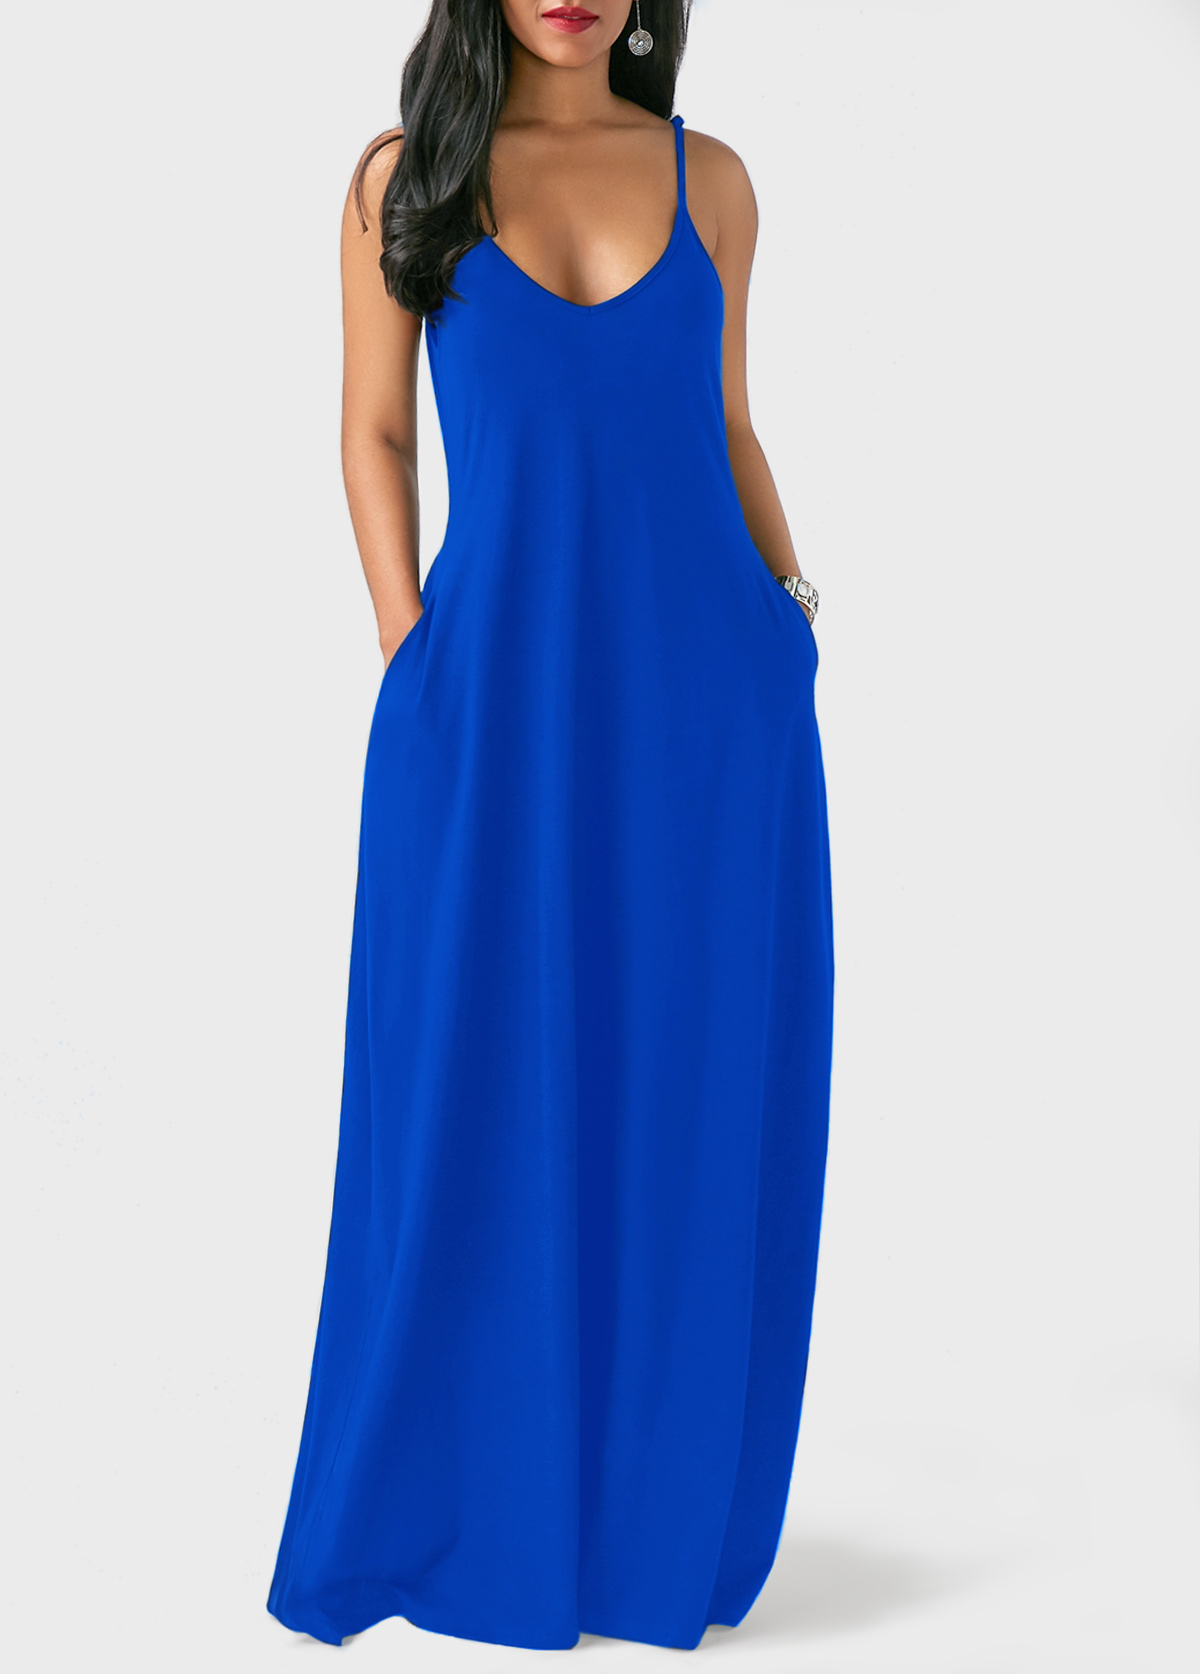 24d1b74e54 Royal Blue Spaghetti Strap Maxi Dress